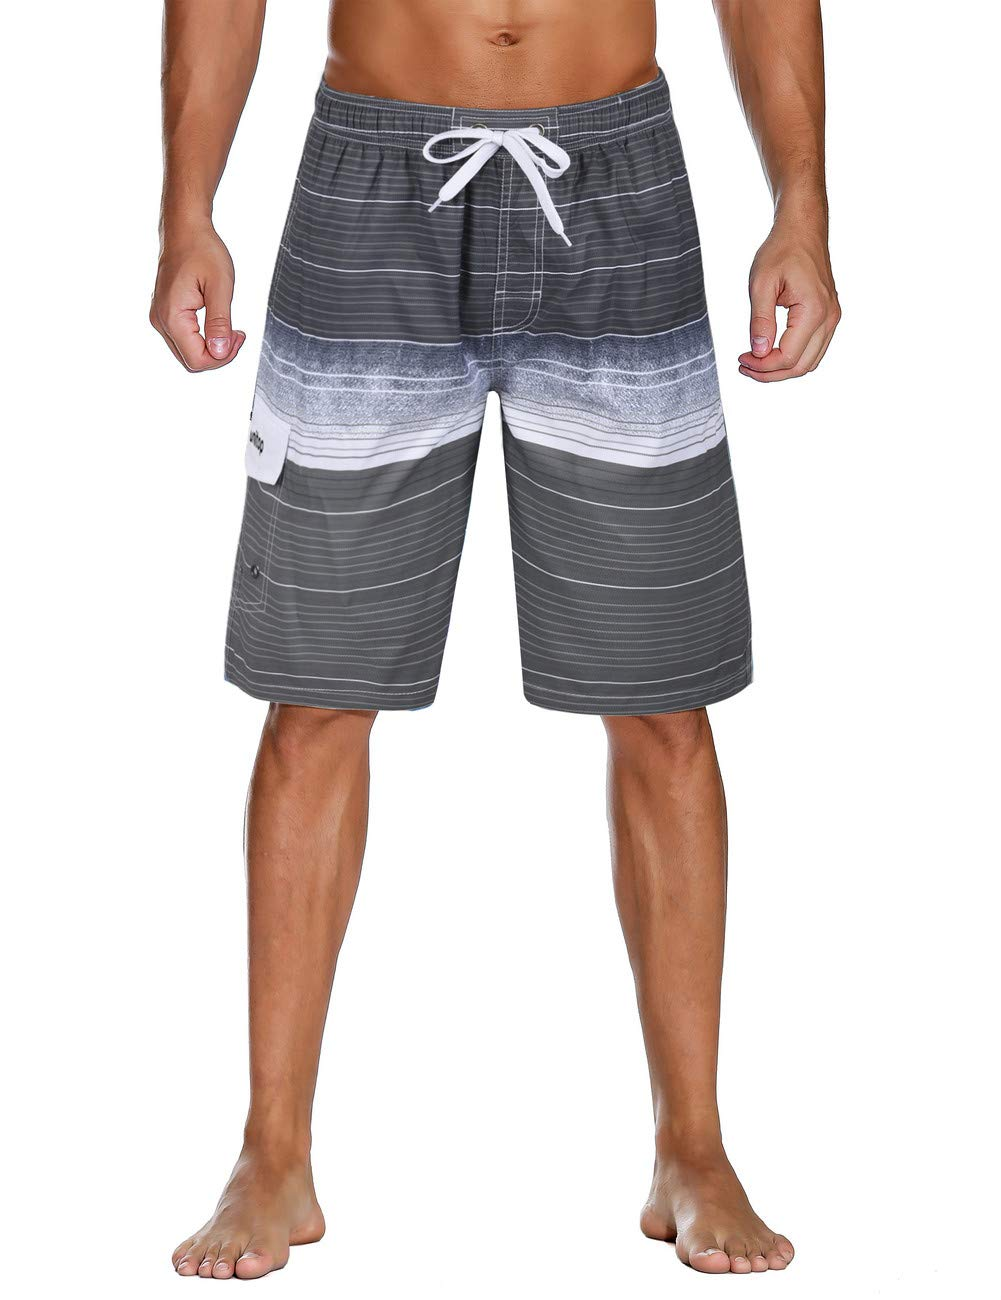 17b398c4e6726 Unitop Men's Colortful Striped Swim Trunks Beach Board Shorts with Lining  product image